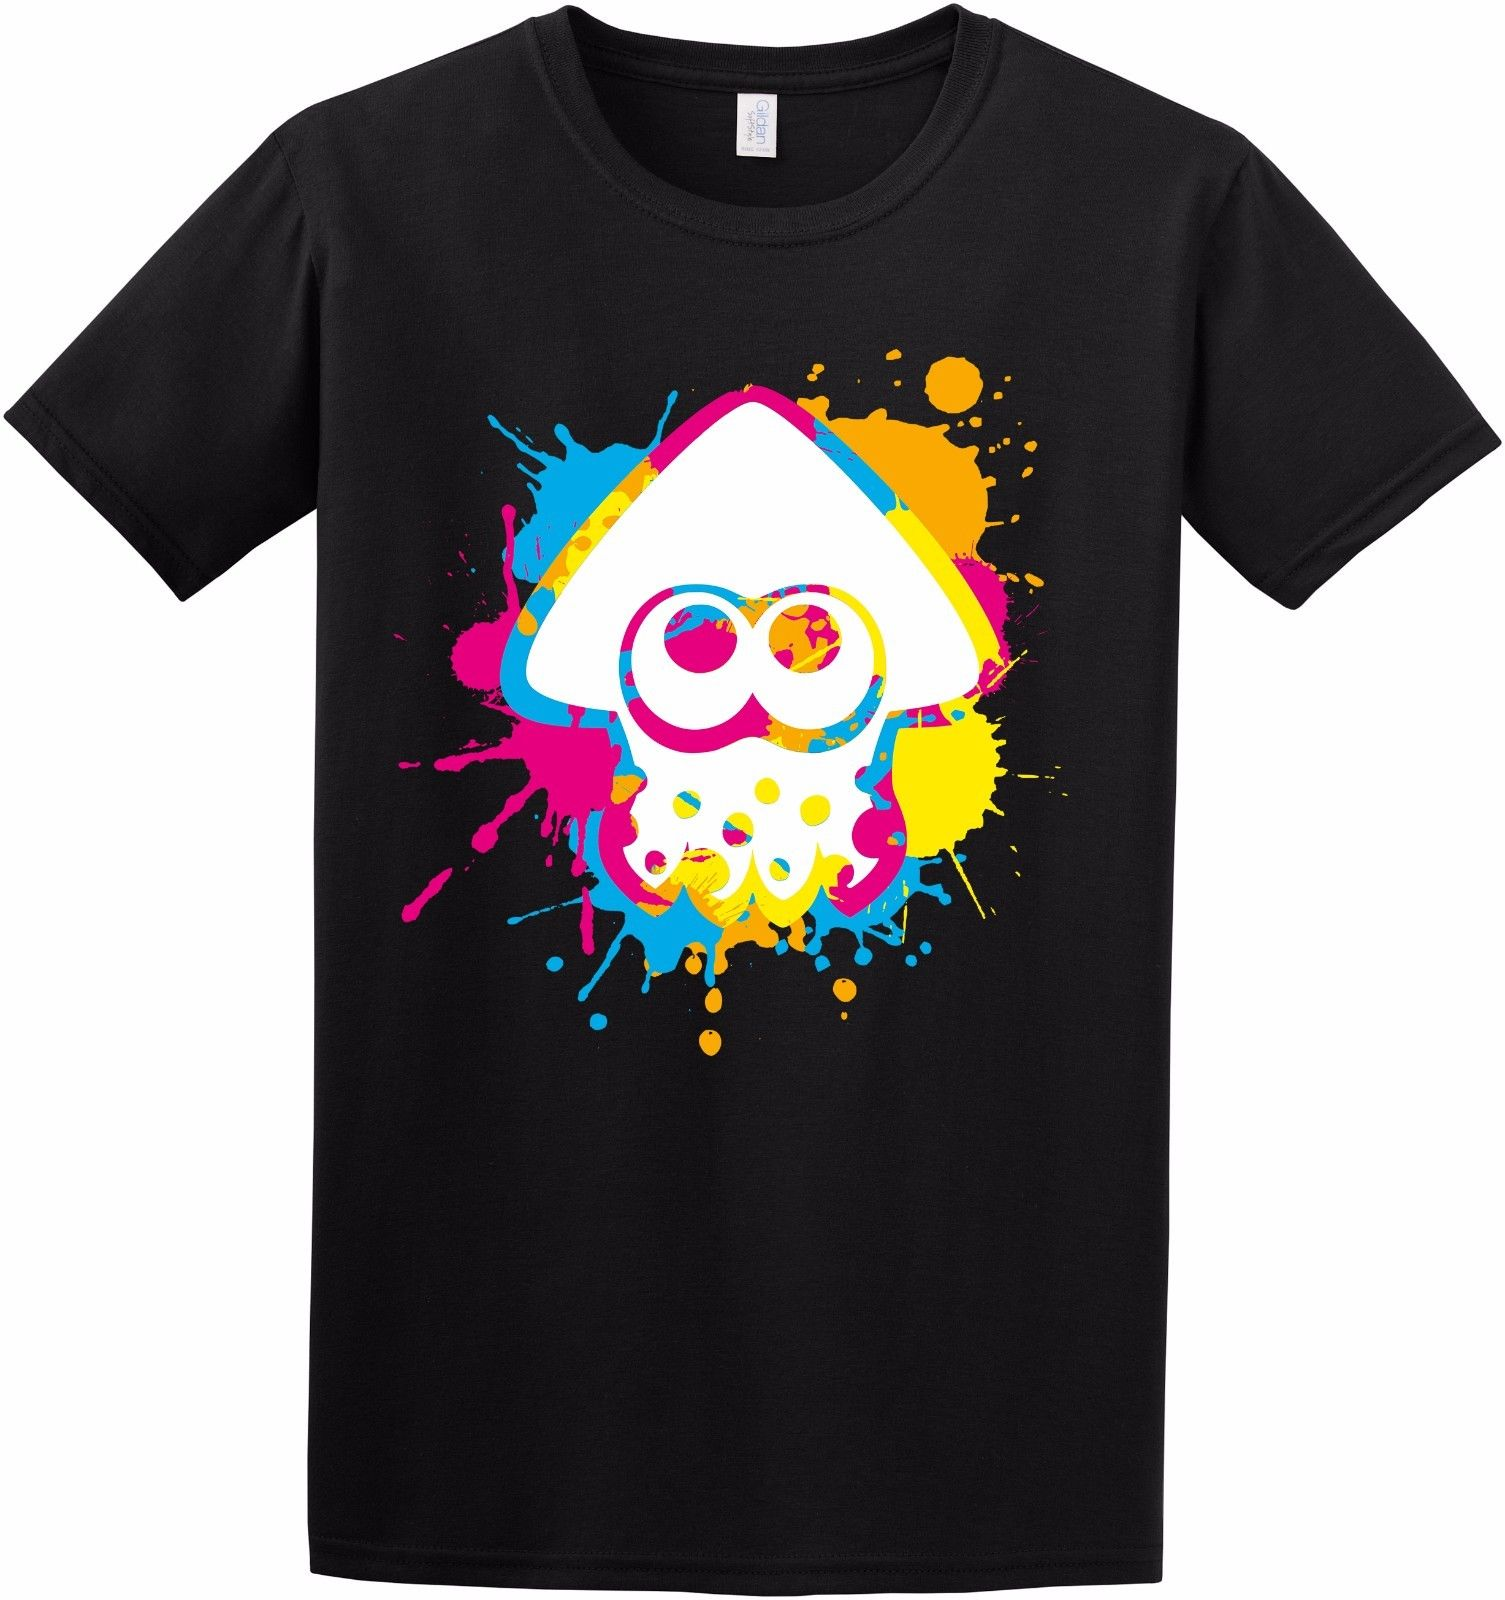 Inkling Colour Ink Splat Splatoon Squid Switch Game Inspired Kids Adult T-Shirt Tee Shirt Casual Short Sleeve